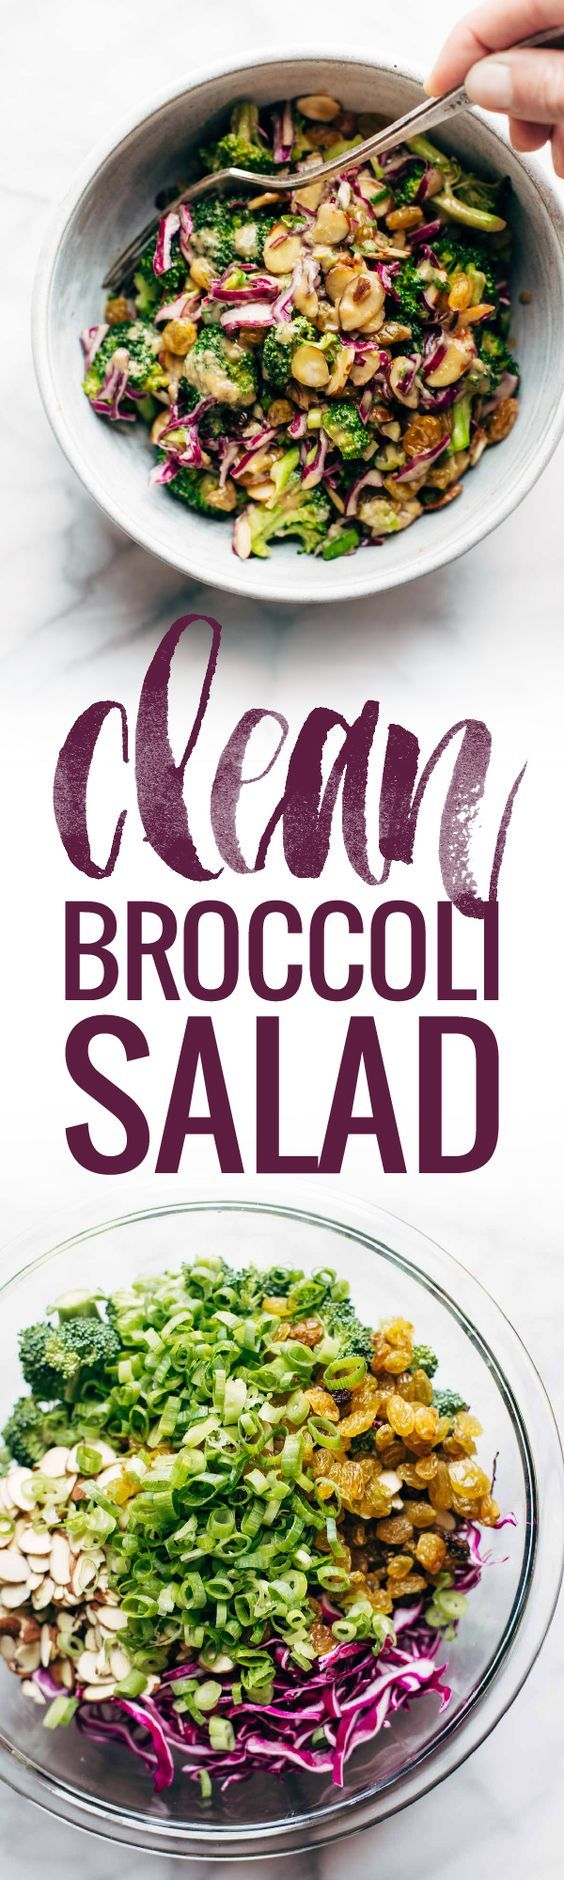 CLEAN Broccoli Salad - non-mayo-based vegan goodness! with purple cabbage, raisins, almonds, green onions, and a creamy almond butter dressing. seriously yummy! | pinchofyum.com